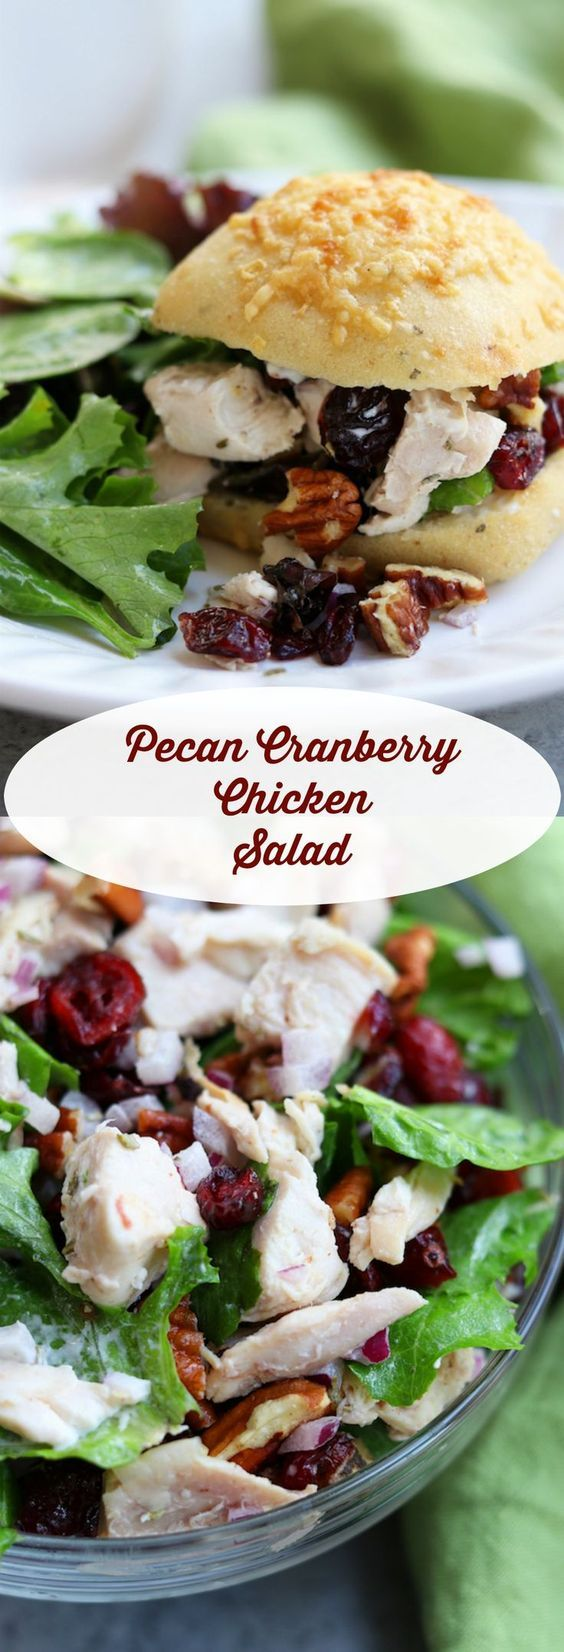 Pecan Cranberry Chicken Salad recipe makes a perfect light and tasty lunch nestled in your favorite bread. Sweet, creamy and savory, you will feel like you just had lunch at a sidewalk cafe. http://www.thefedupfoodie.com: